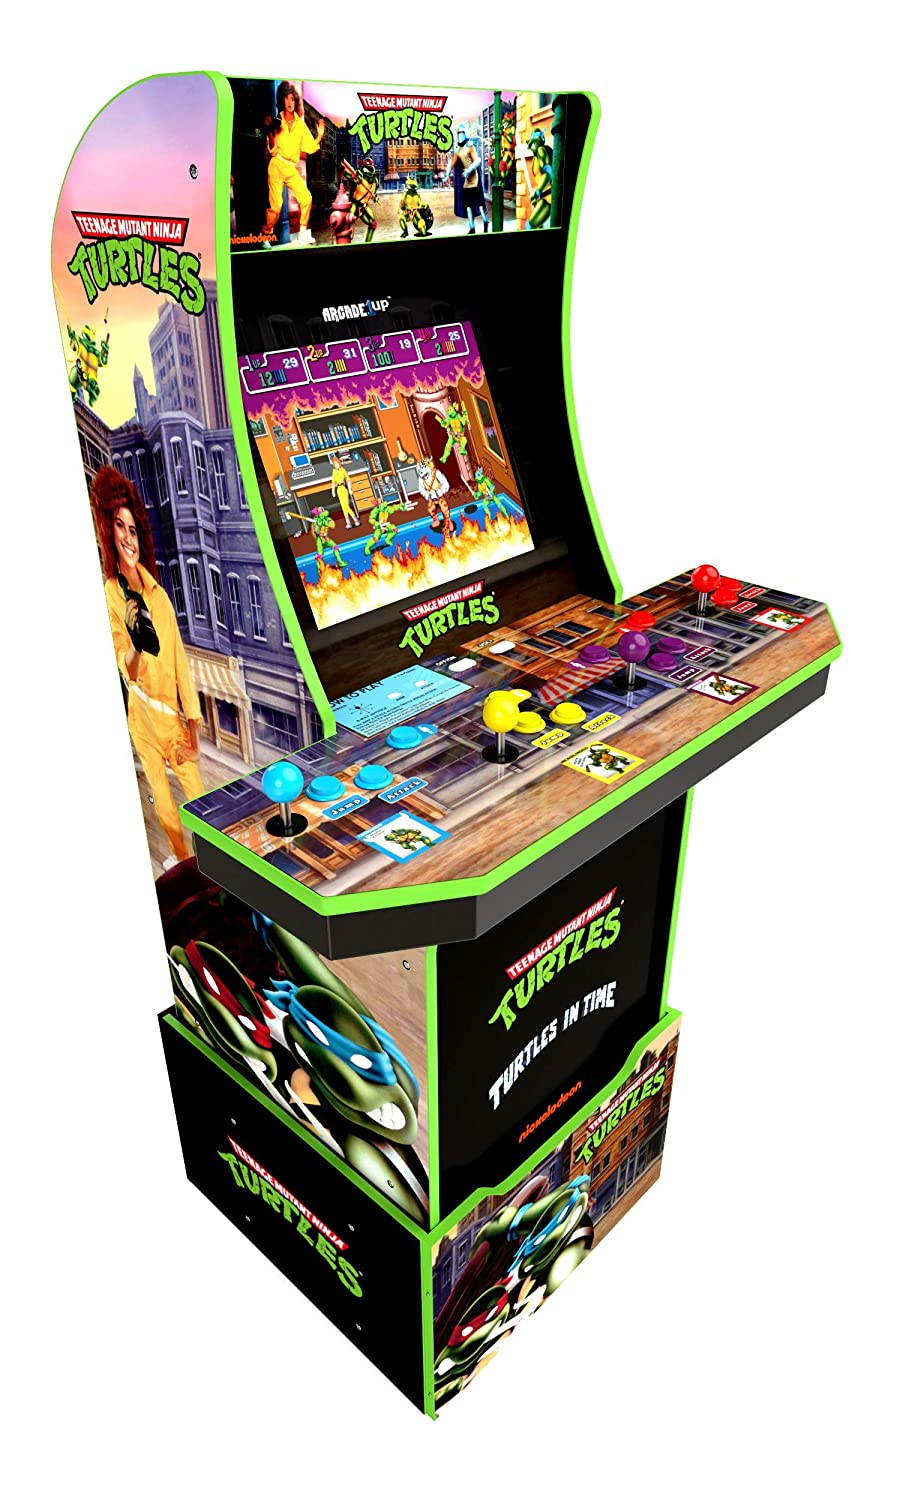 Arcade1Up Teenage Mutant Ninja Turtles Tmnt Home Arcade Machine, 2 Games In 1, 4 Foot Cabinet with 1 Foot Riser - Electronic Games